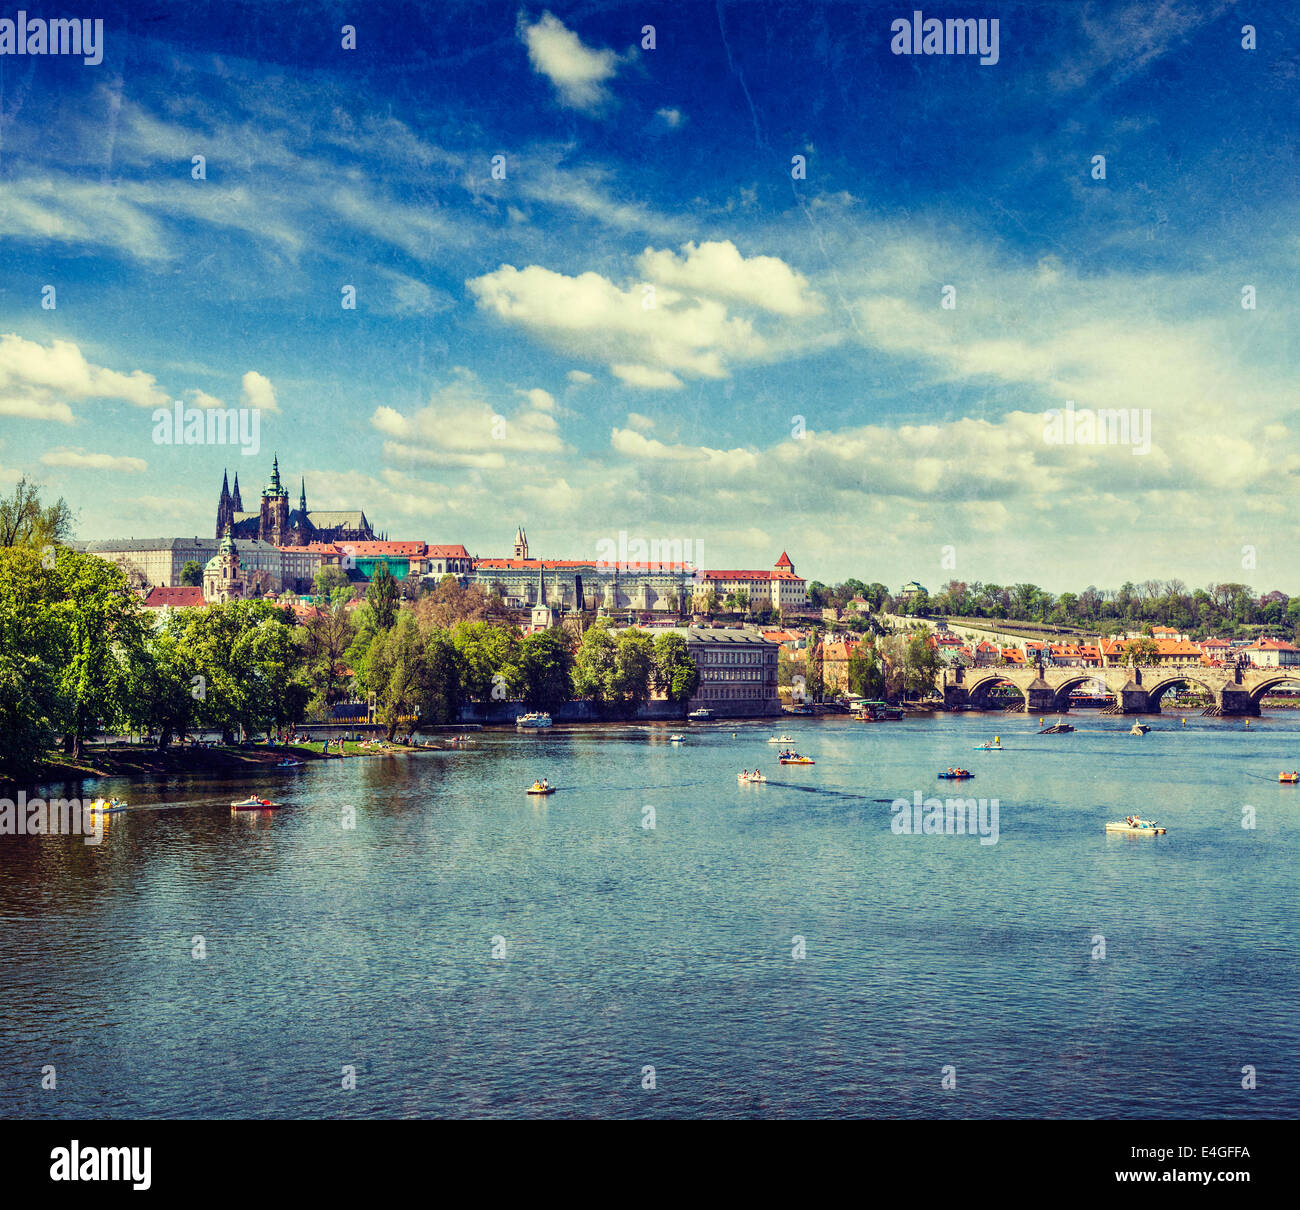 Vintage retro hipster style travel image of  Vltava river and Gradchany (Prague Castle) and St. Vitus Cathedral - Stock Image